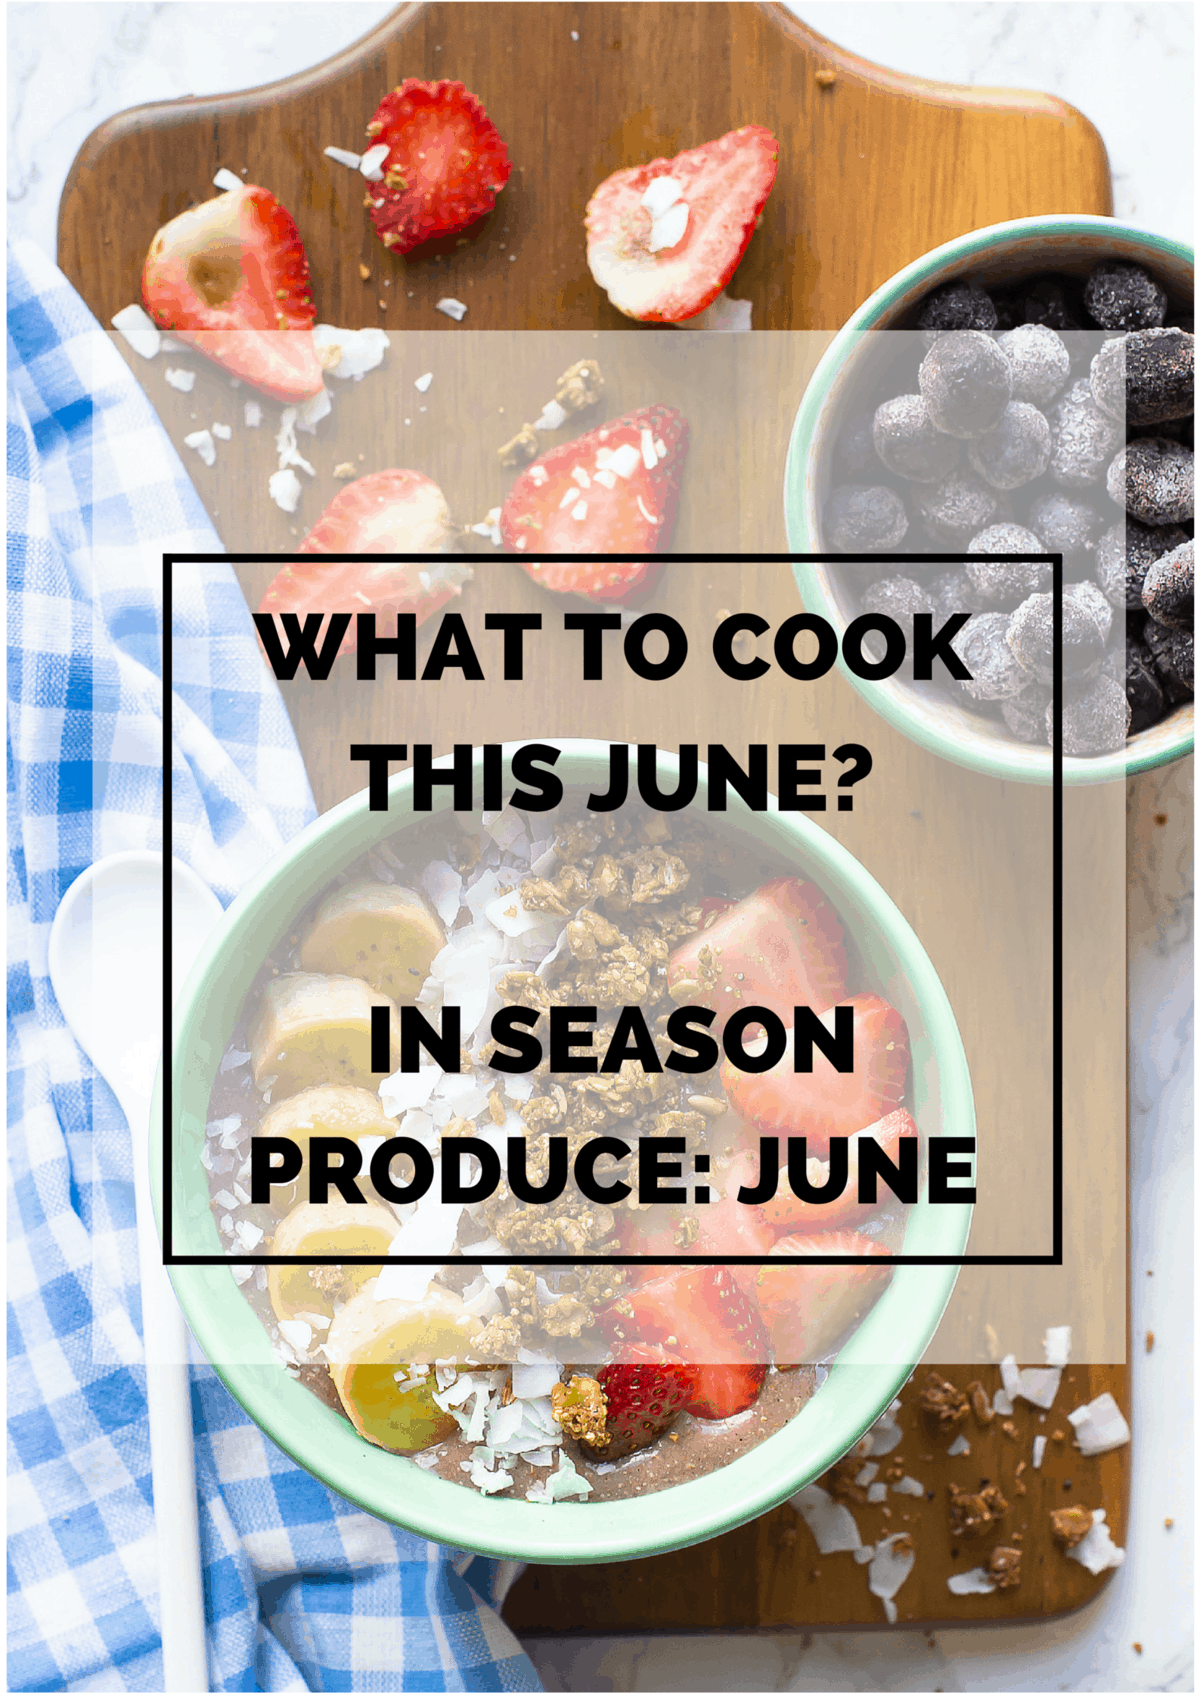 Title graphic for to cook this june.